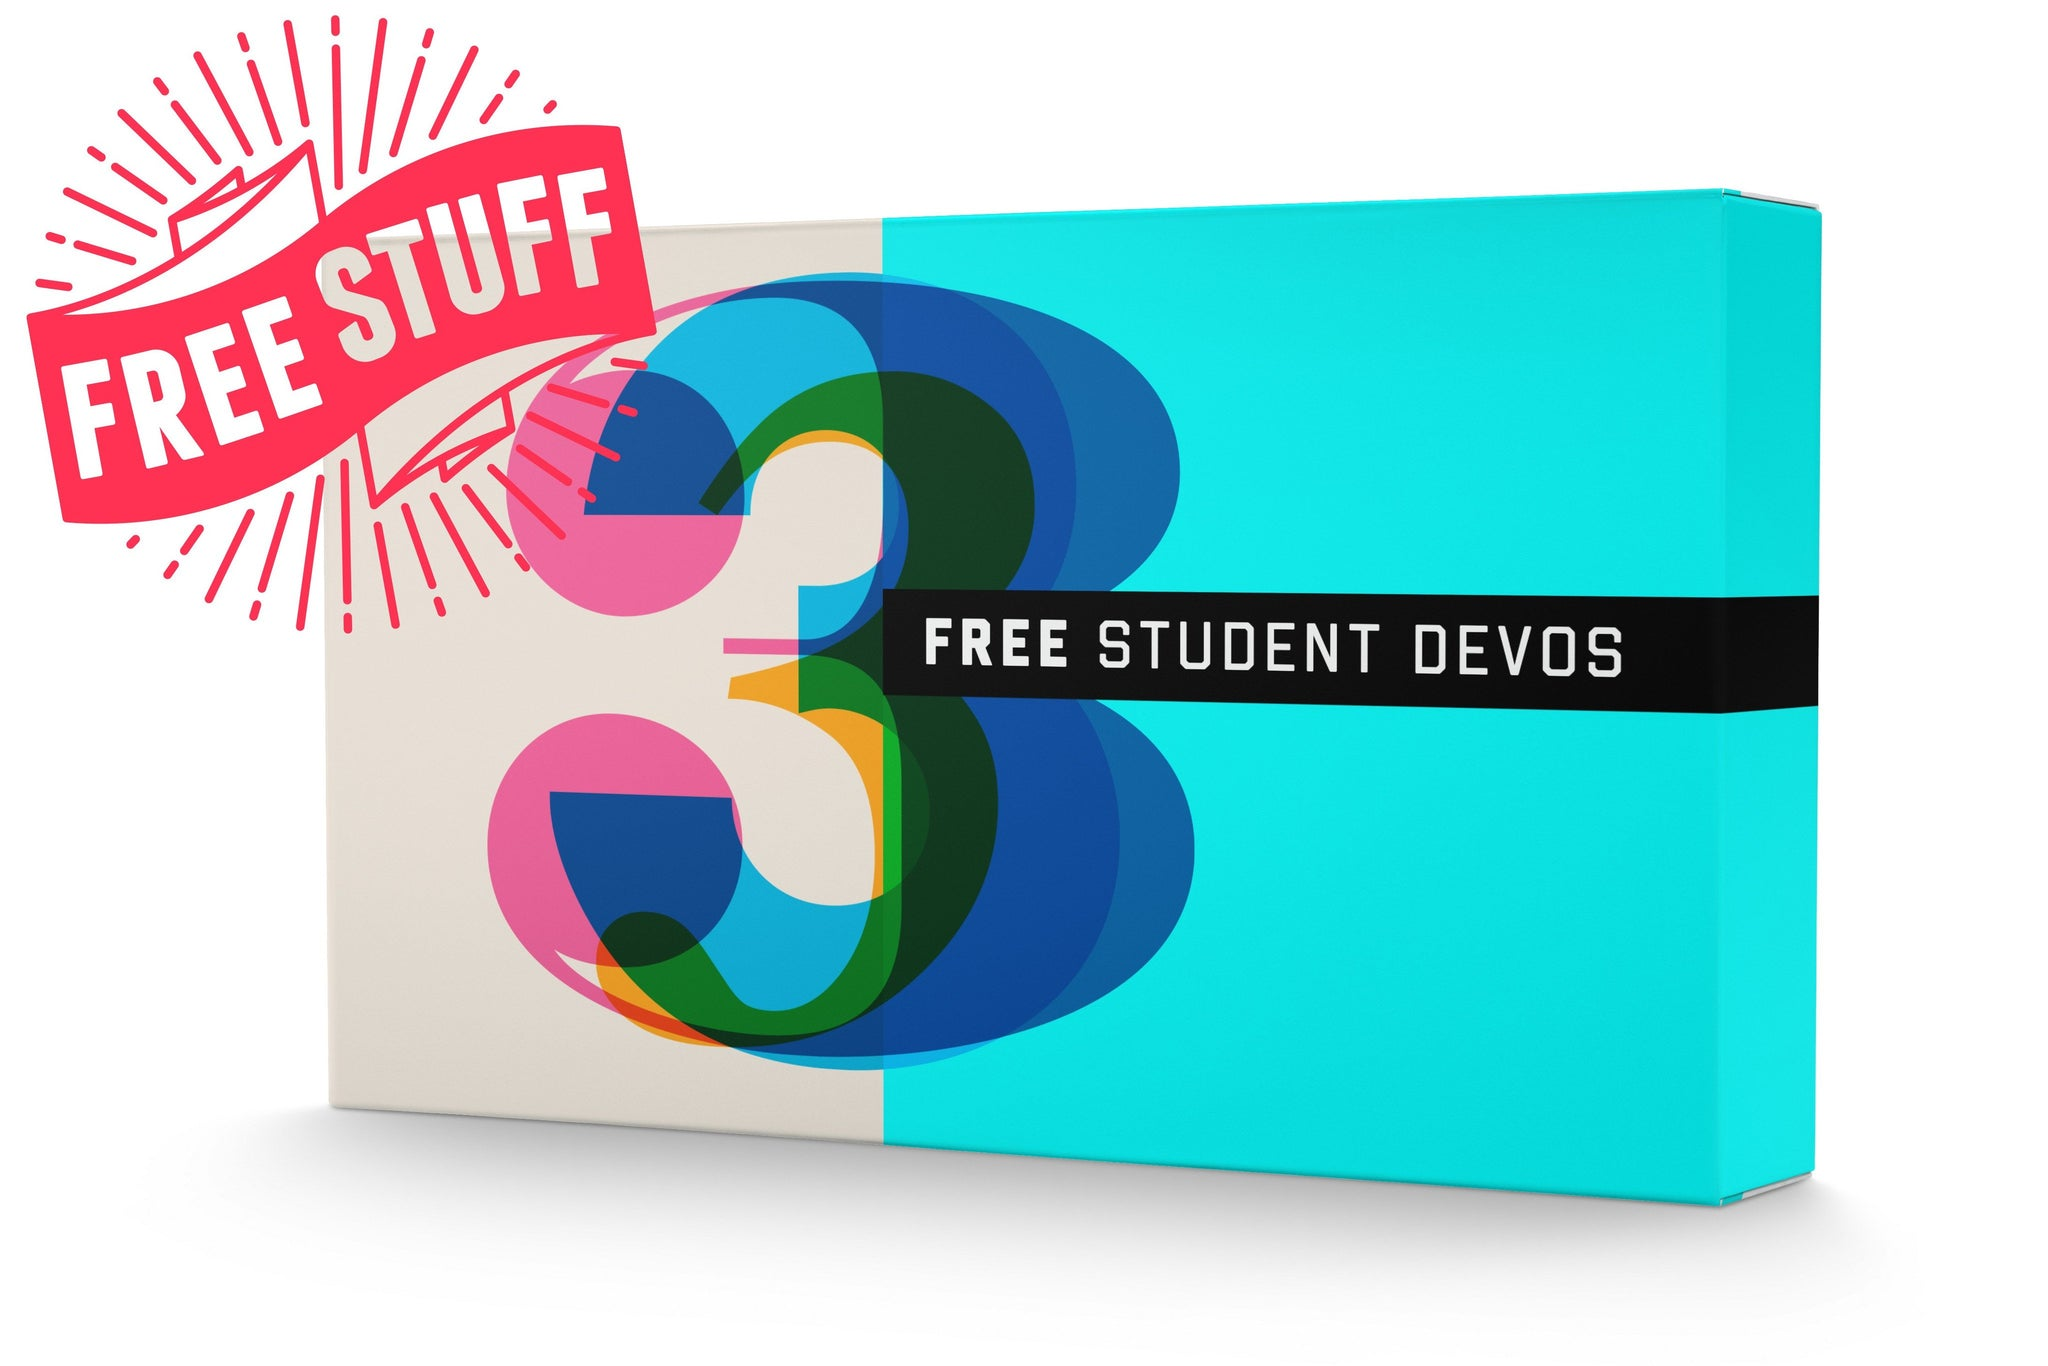 3 Free Student Devo's || Plugging In: Connecting With What God's Doing